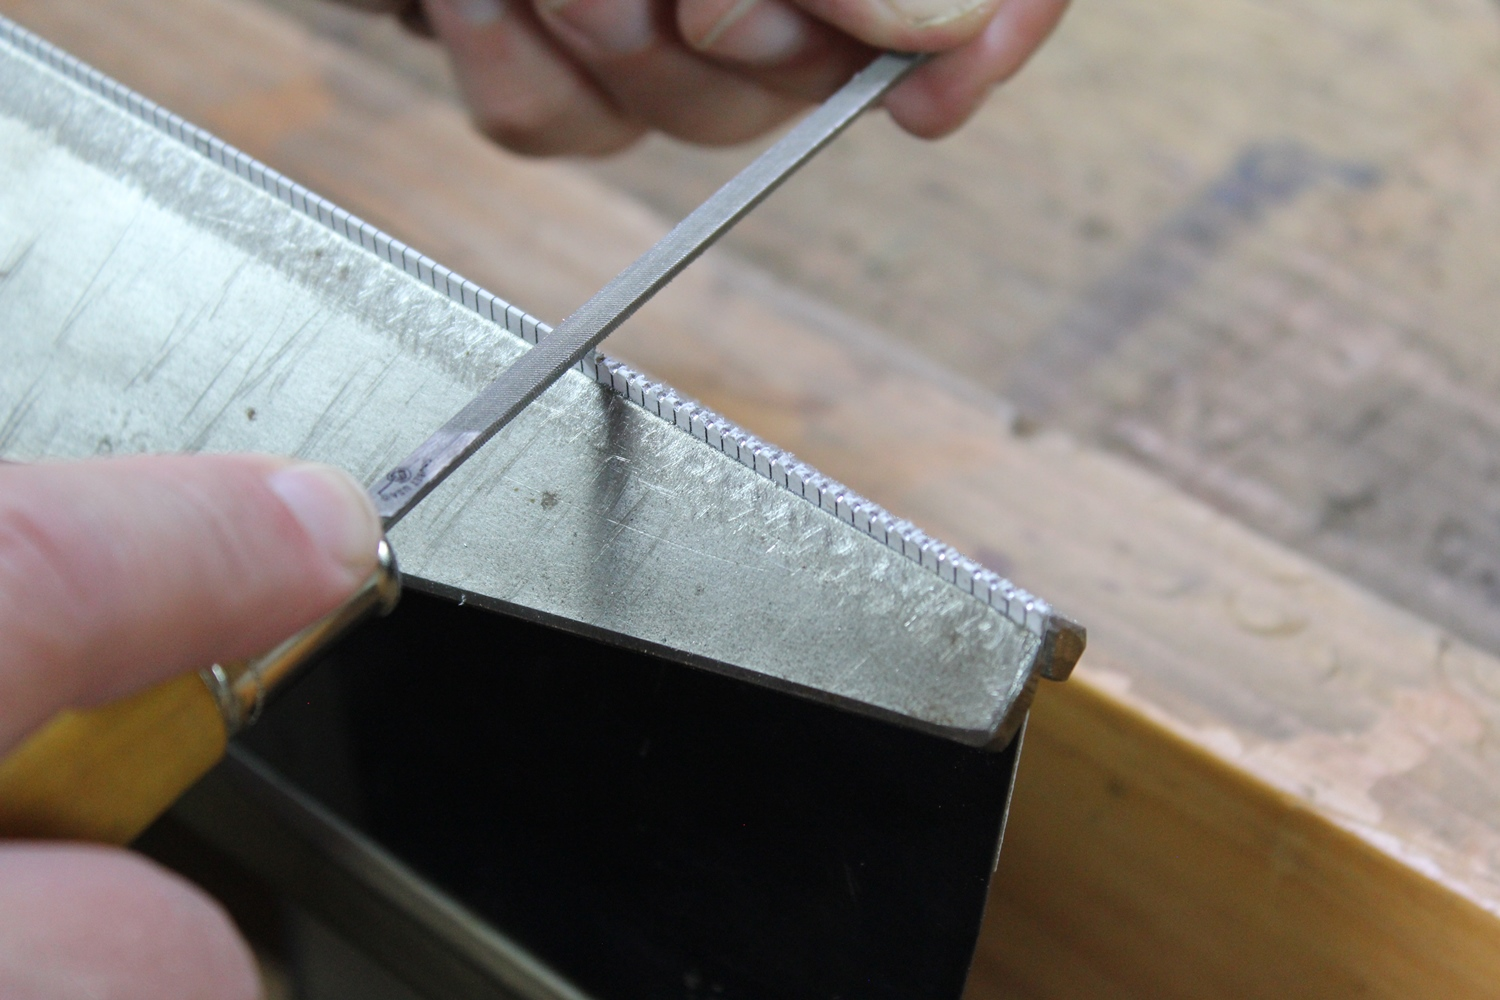 Filing New Saw Teeth